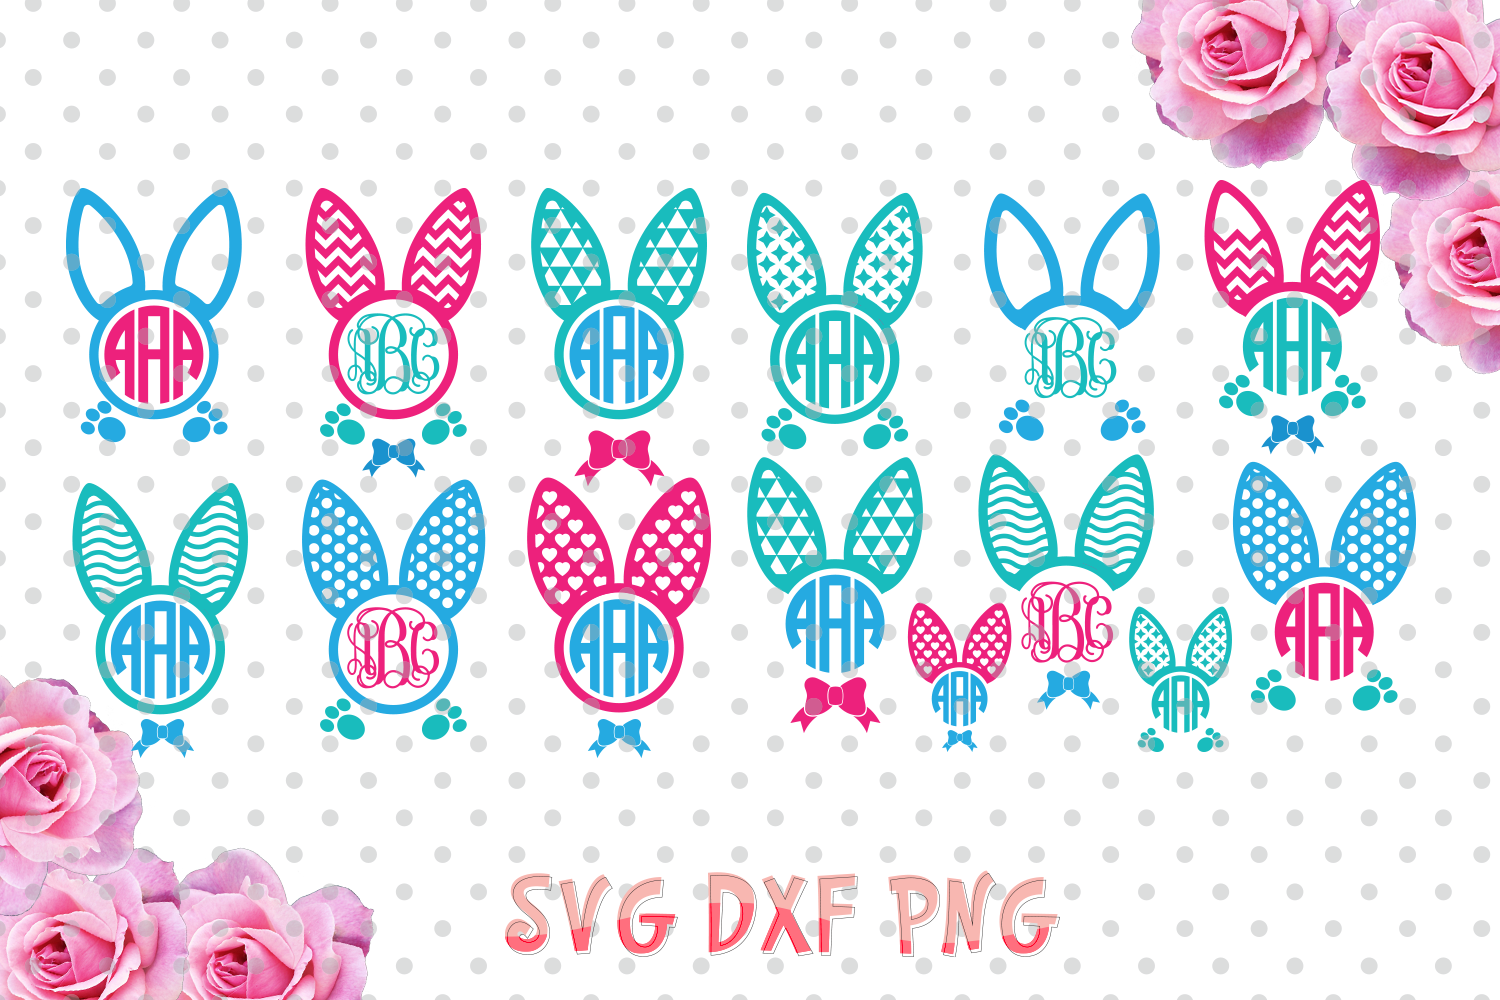 Easter bunny ears Monogram Frames Svg cutting file, bunny ears SVG, DXF, Cricut Design Space, Silhouette Studio,Digital Cut Files example image 1